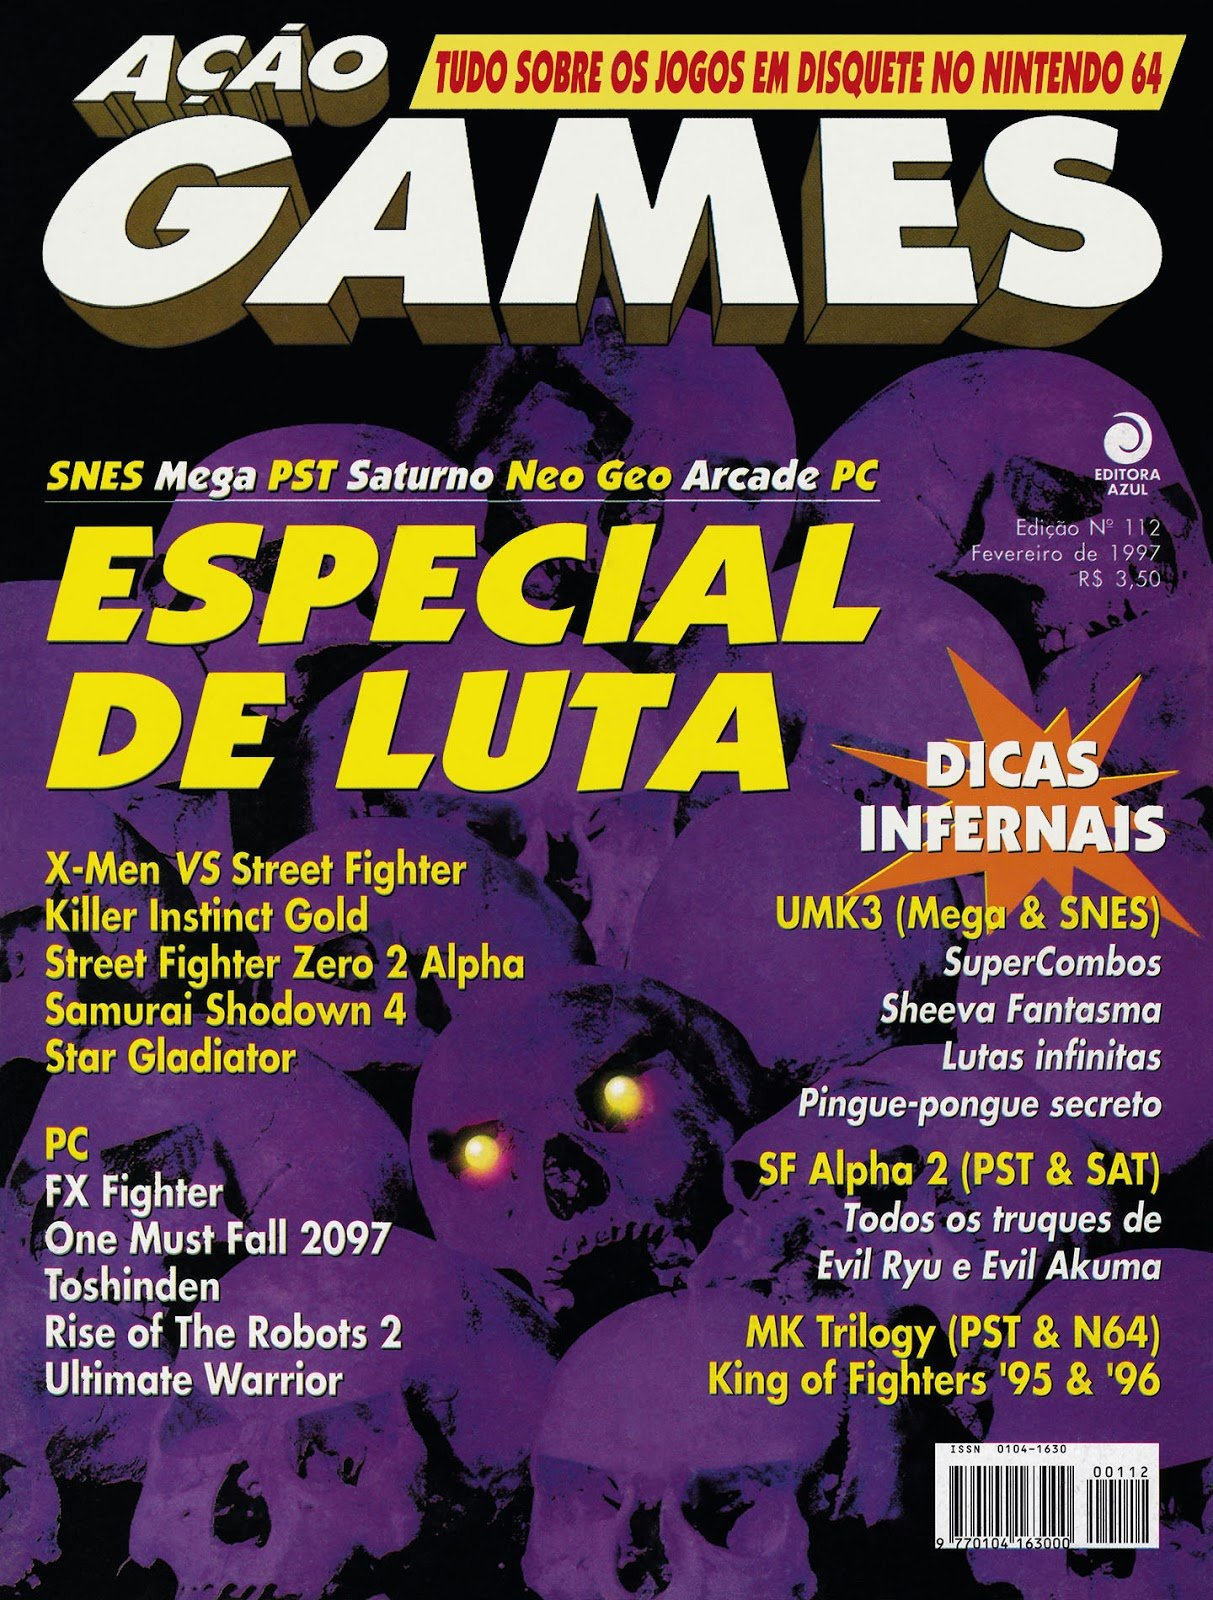 Acao Games Issue 112 (February 1997)